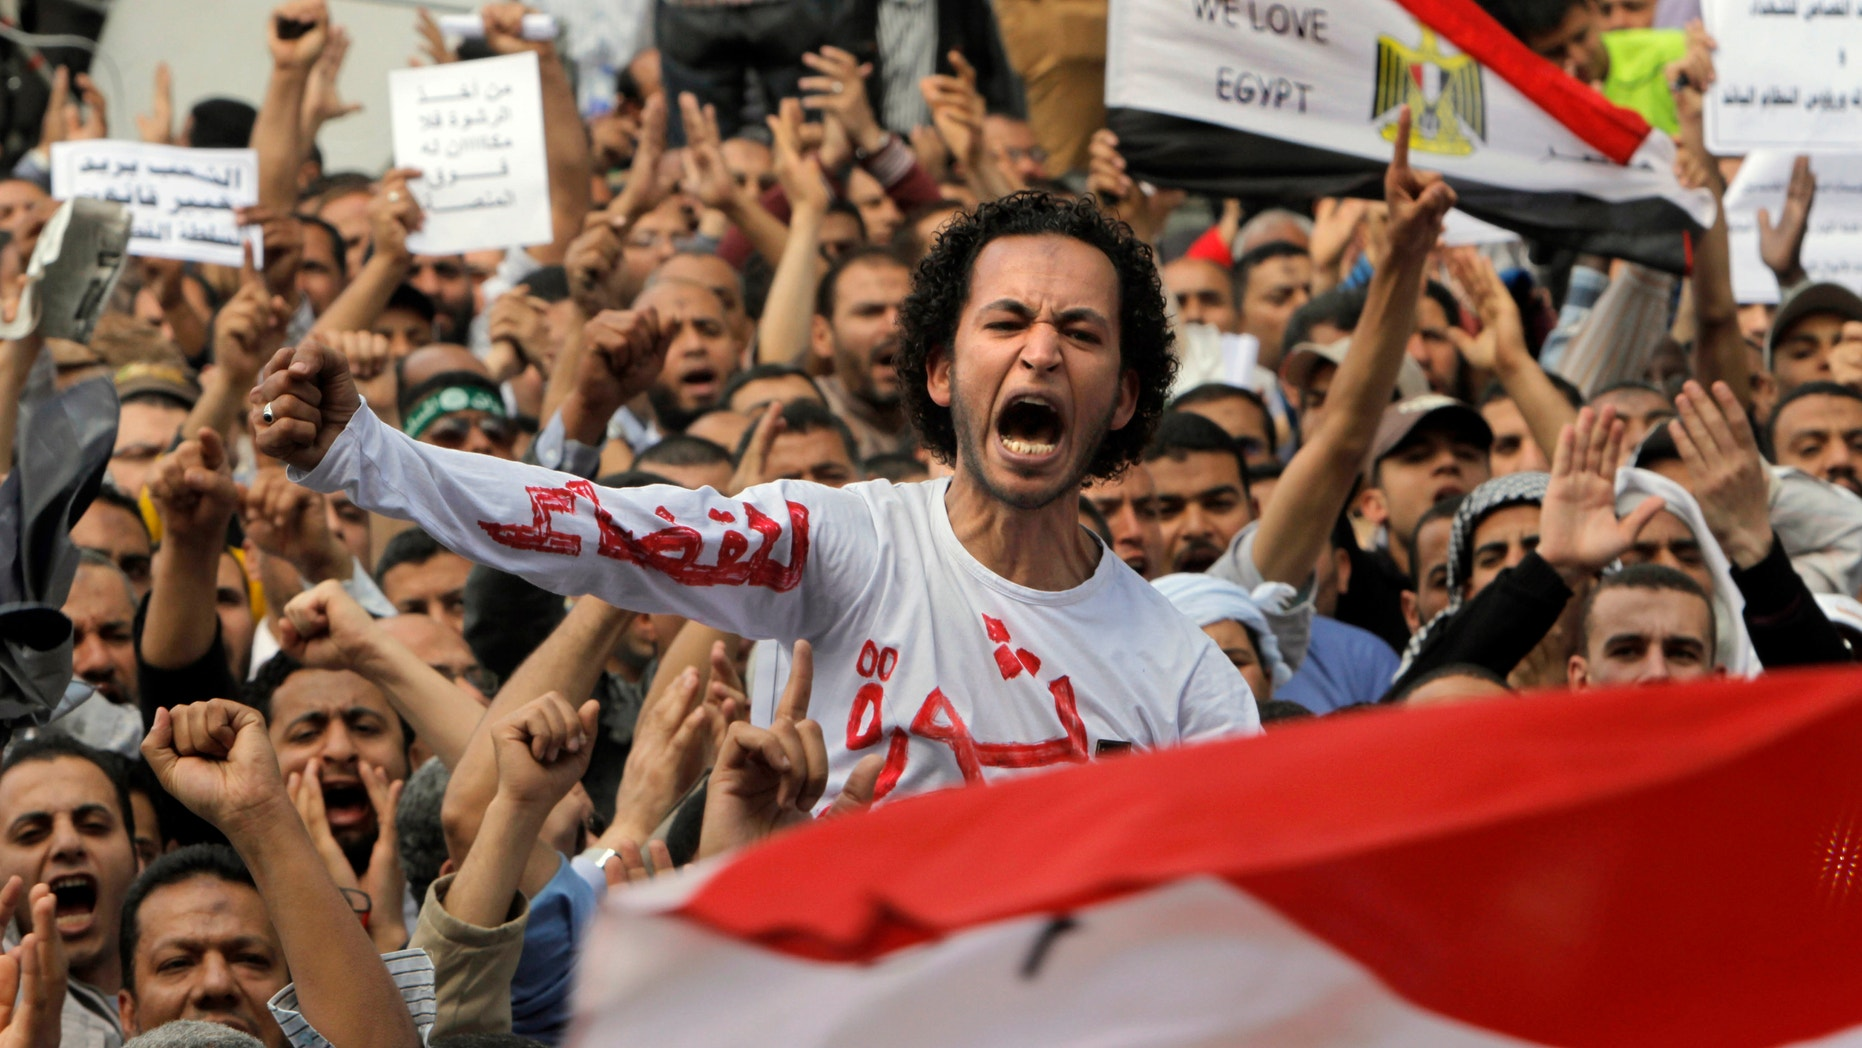 """April 19, 2013 - Egyptian Muslim Brotherhood members shout slogans during a protest in front of the Supreme Judicial Council in Cairo, Egypt. Arabic on the T-shirt reads, """"clean judiciary."""""""